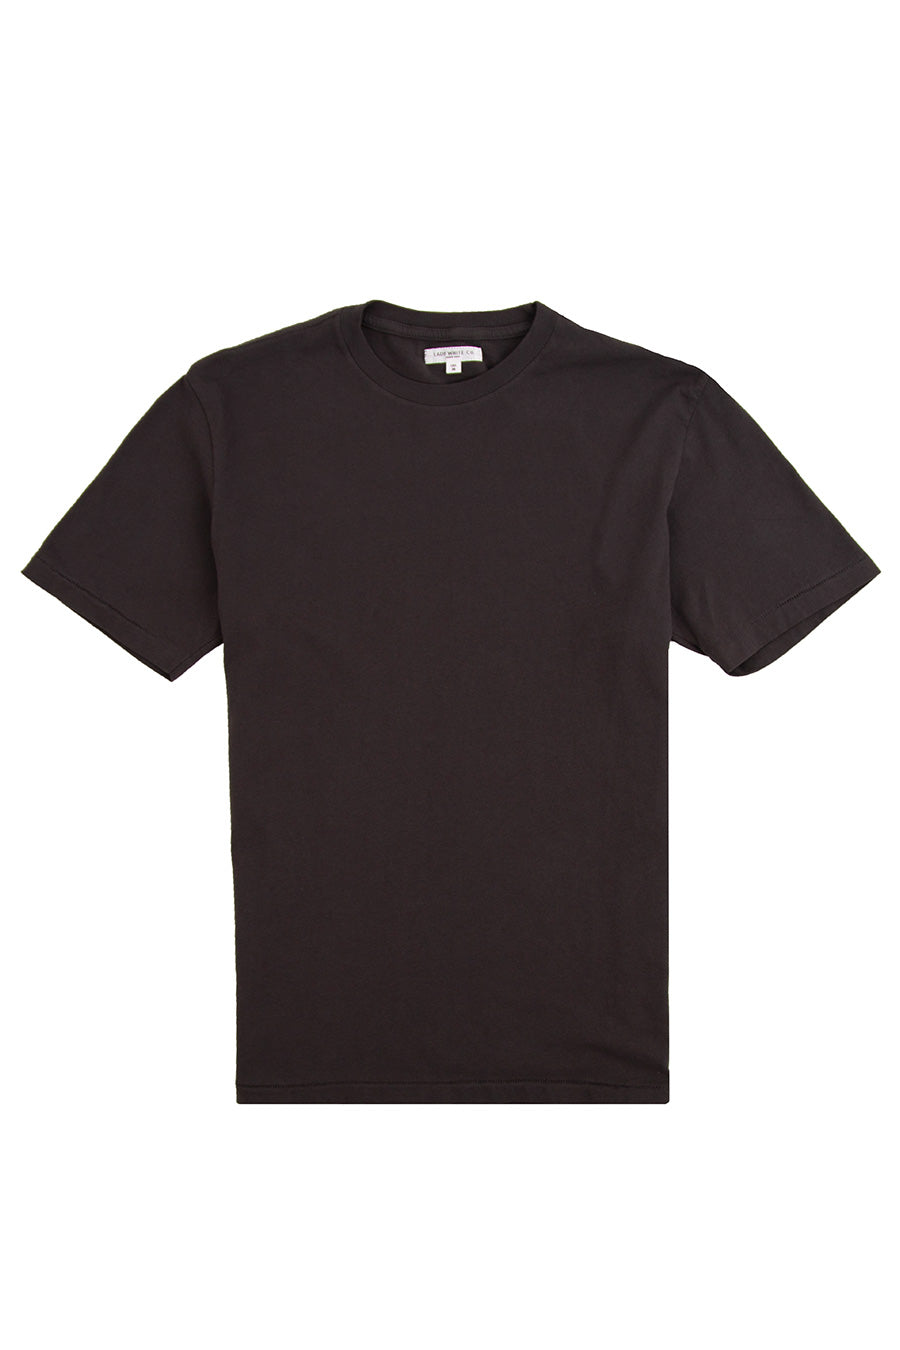 Lady White Co. - Tire Black Lite Jersey T-Shirt | 1032 SPACE